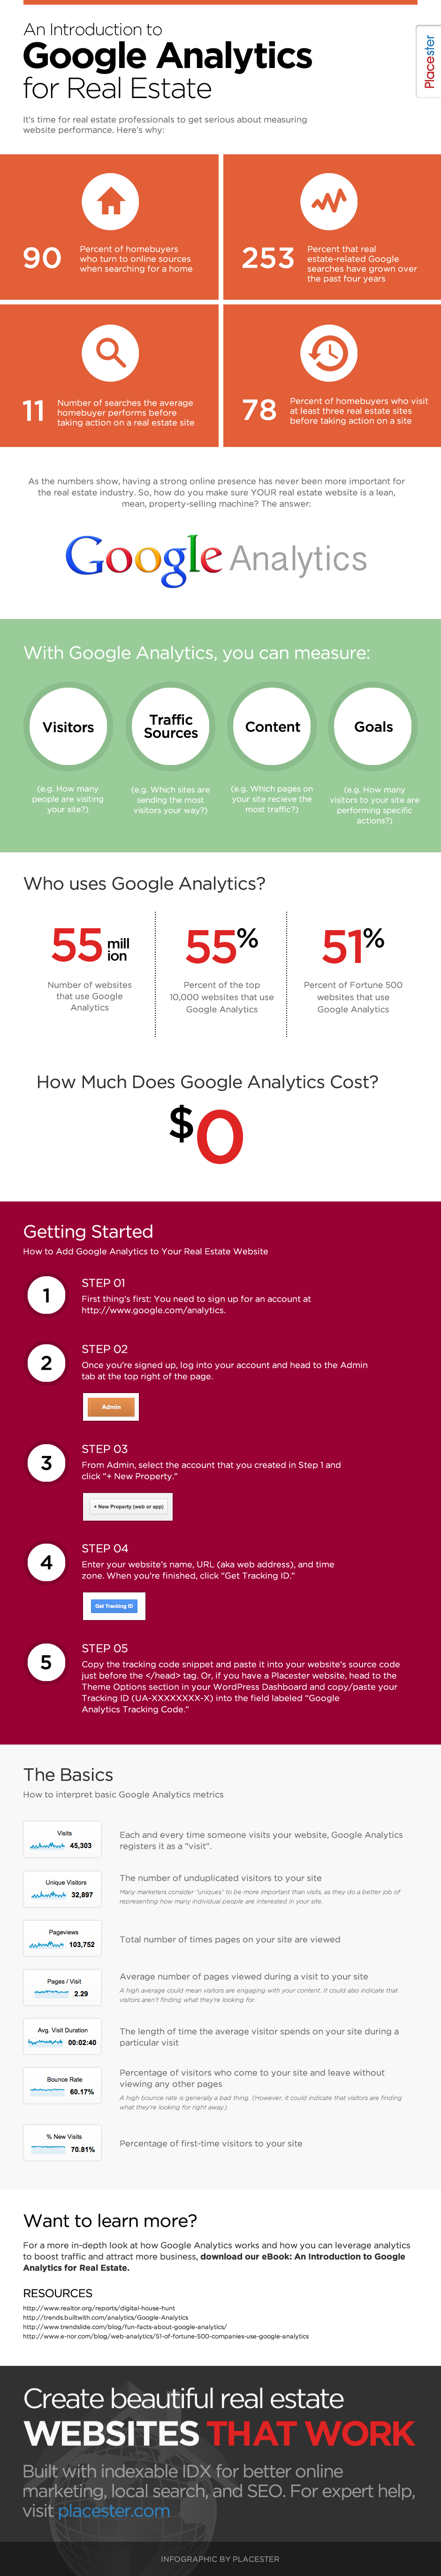 Guide to Google Analytics for Real Estate